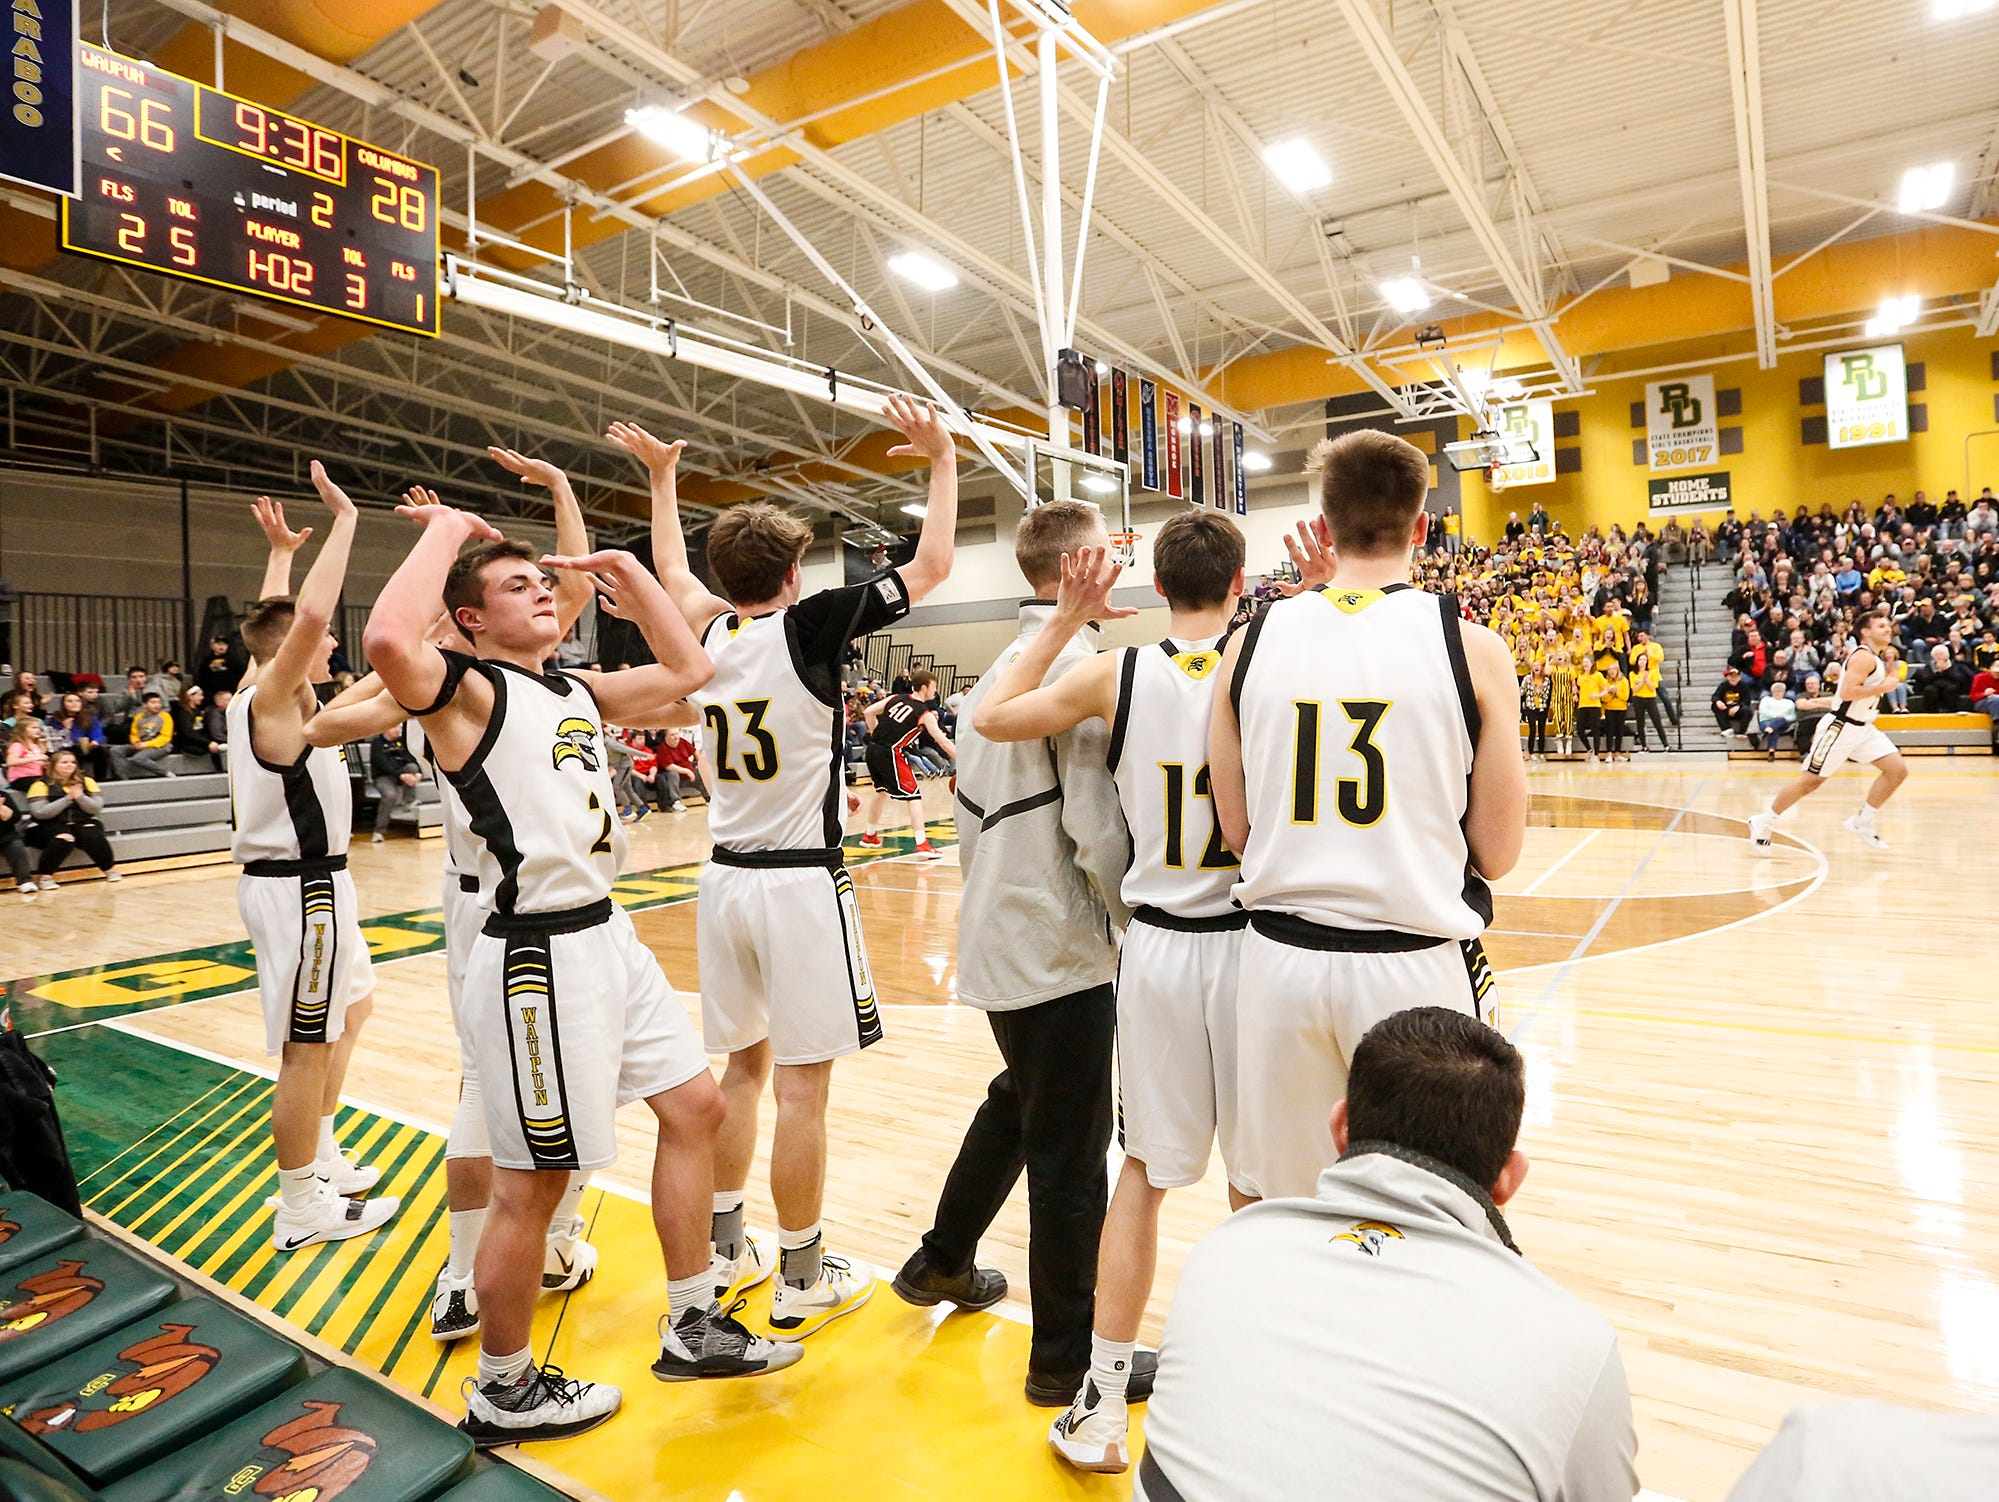 Waupun High School boys basketball players on the bench celebrate a basket against Columbus High School during their WIAA division 3 sectional semi-final game Thursday, March 7, 2019 in Beaver Dam, Wis. Waupun won the game 79-36. Doug Raflik/USA TODAY NETWORK-Wisconsin